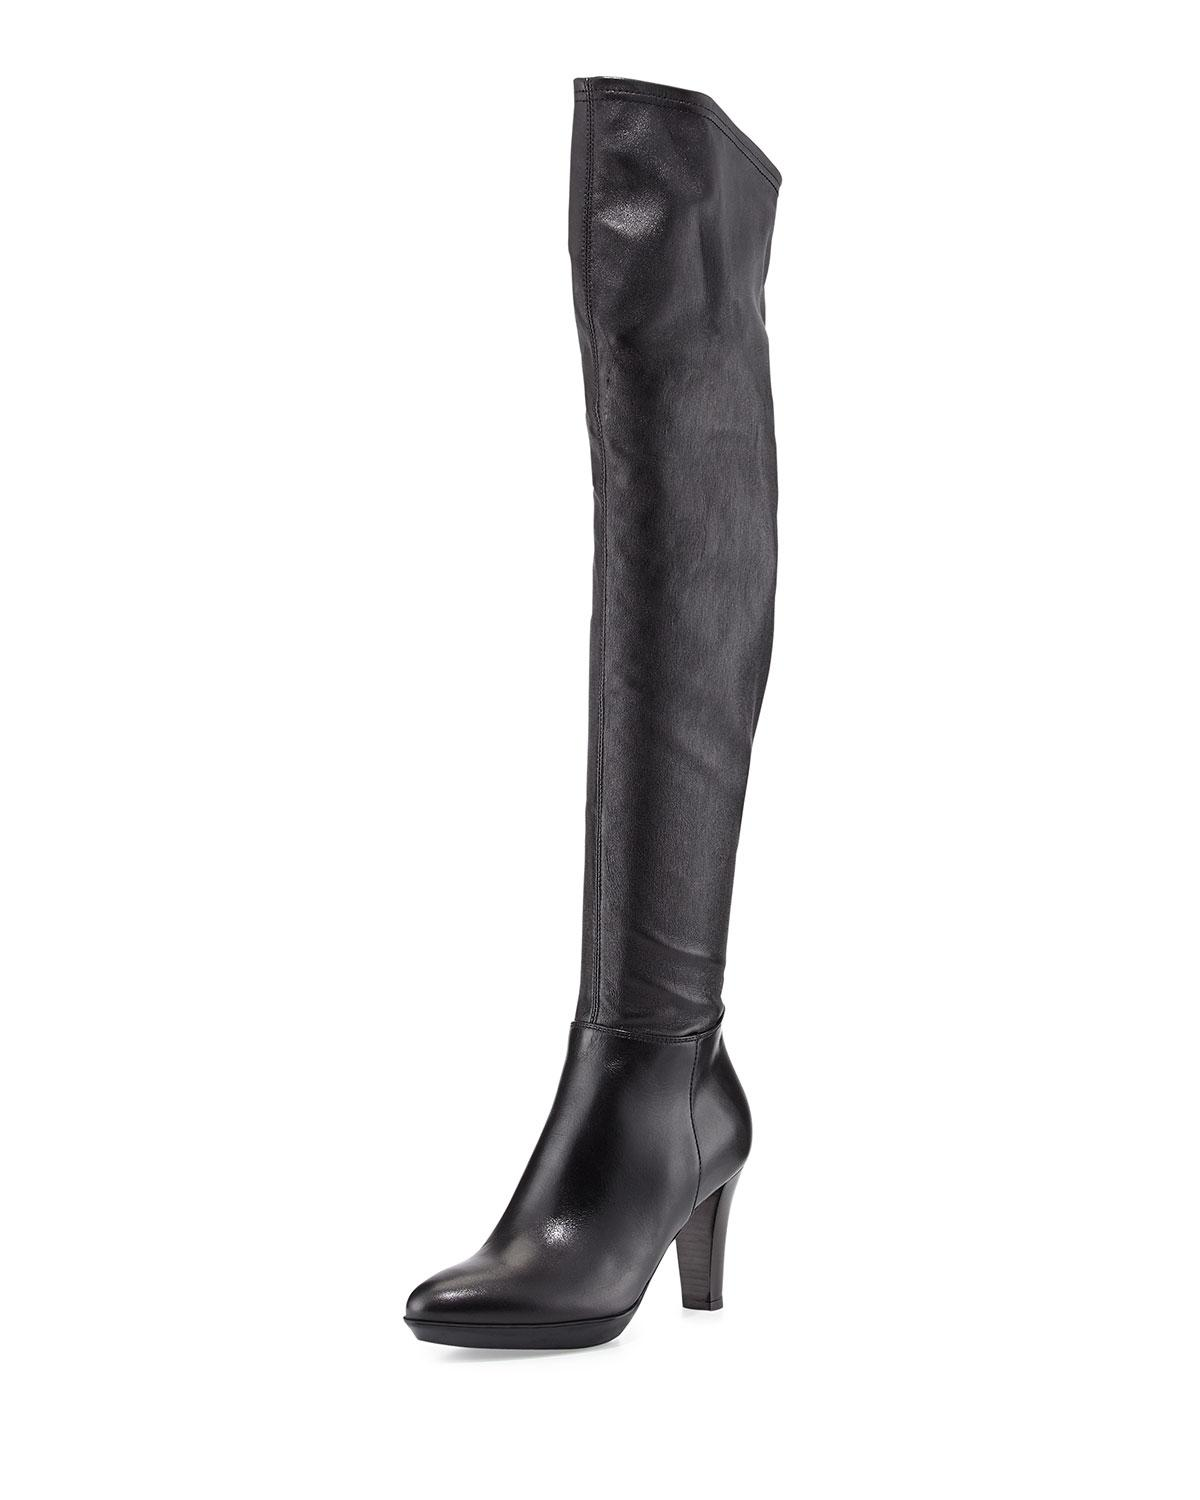 Aquatalia Leather and Nylon Over-The-Knee Boots free shipping great deals discount find great 2015 cheap price 2mJPp